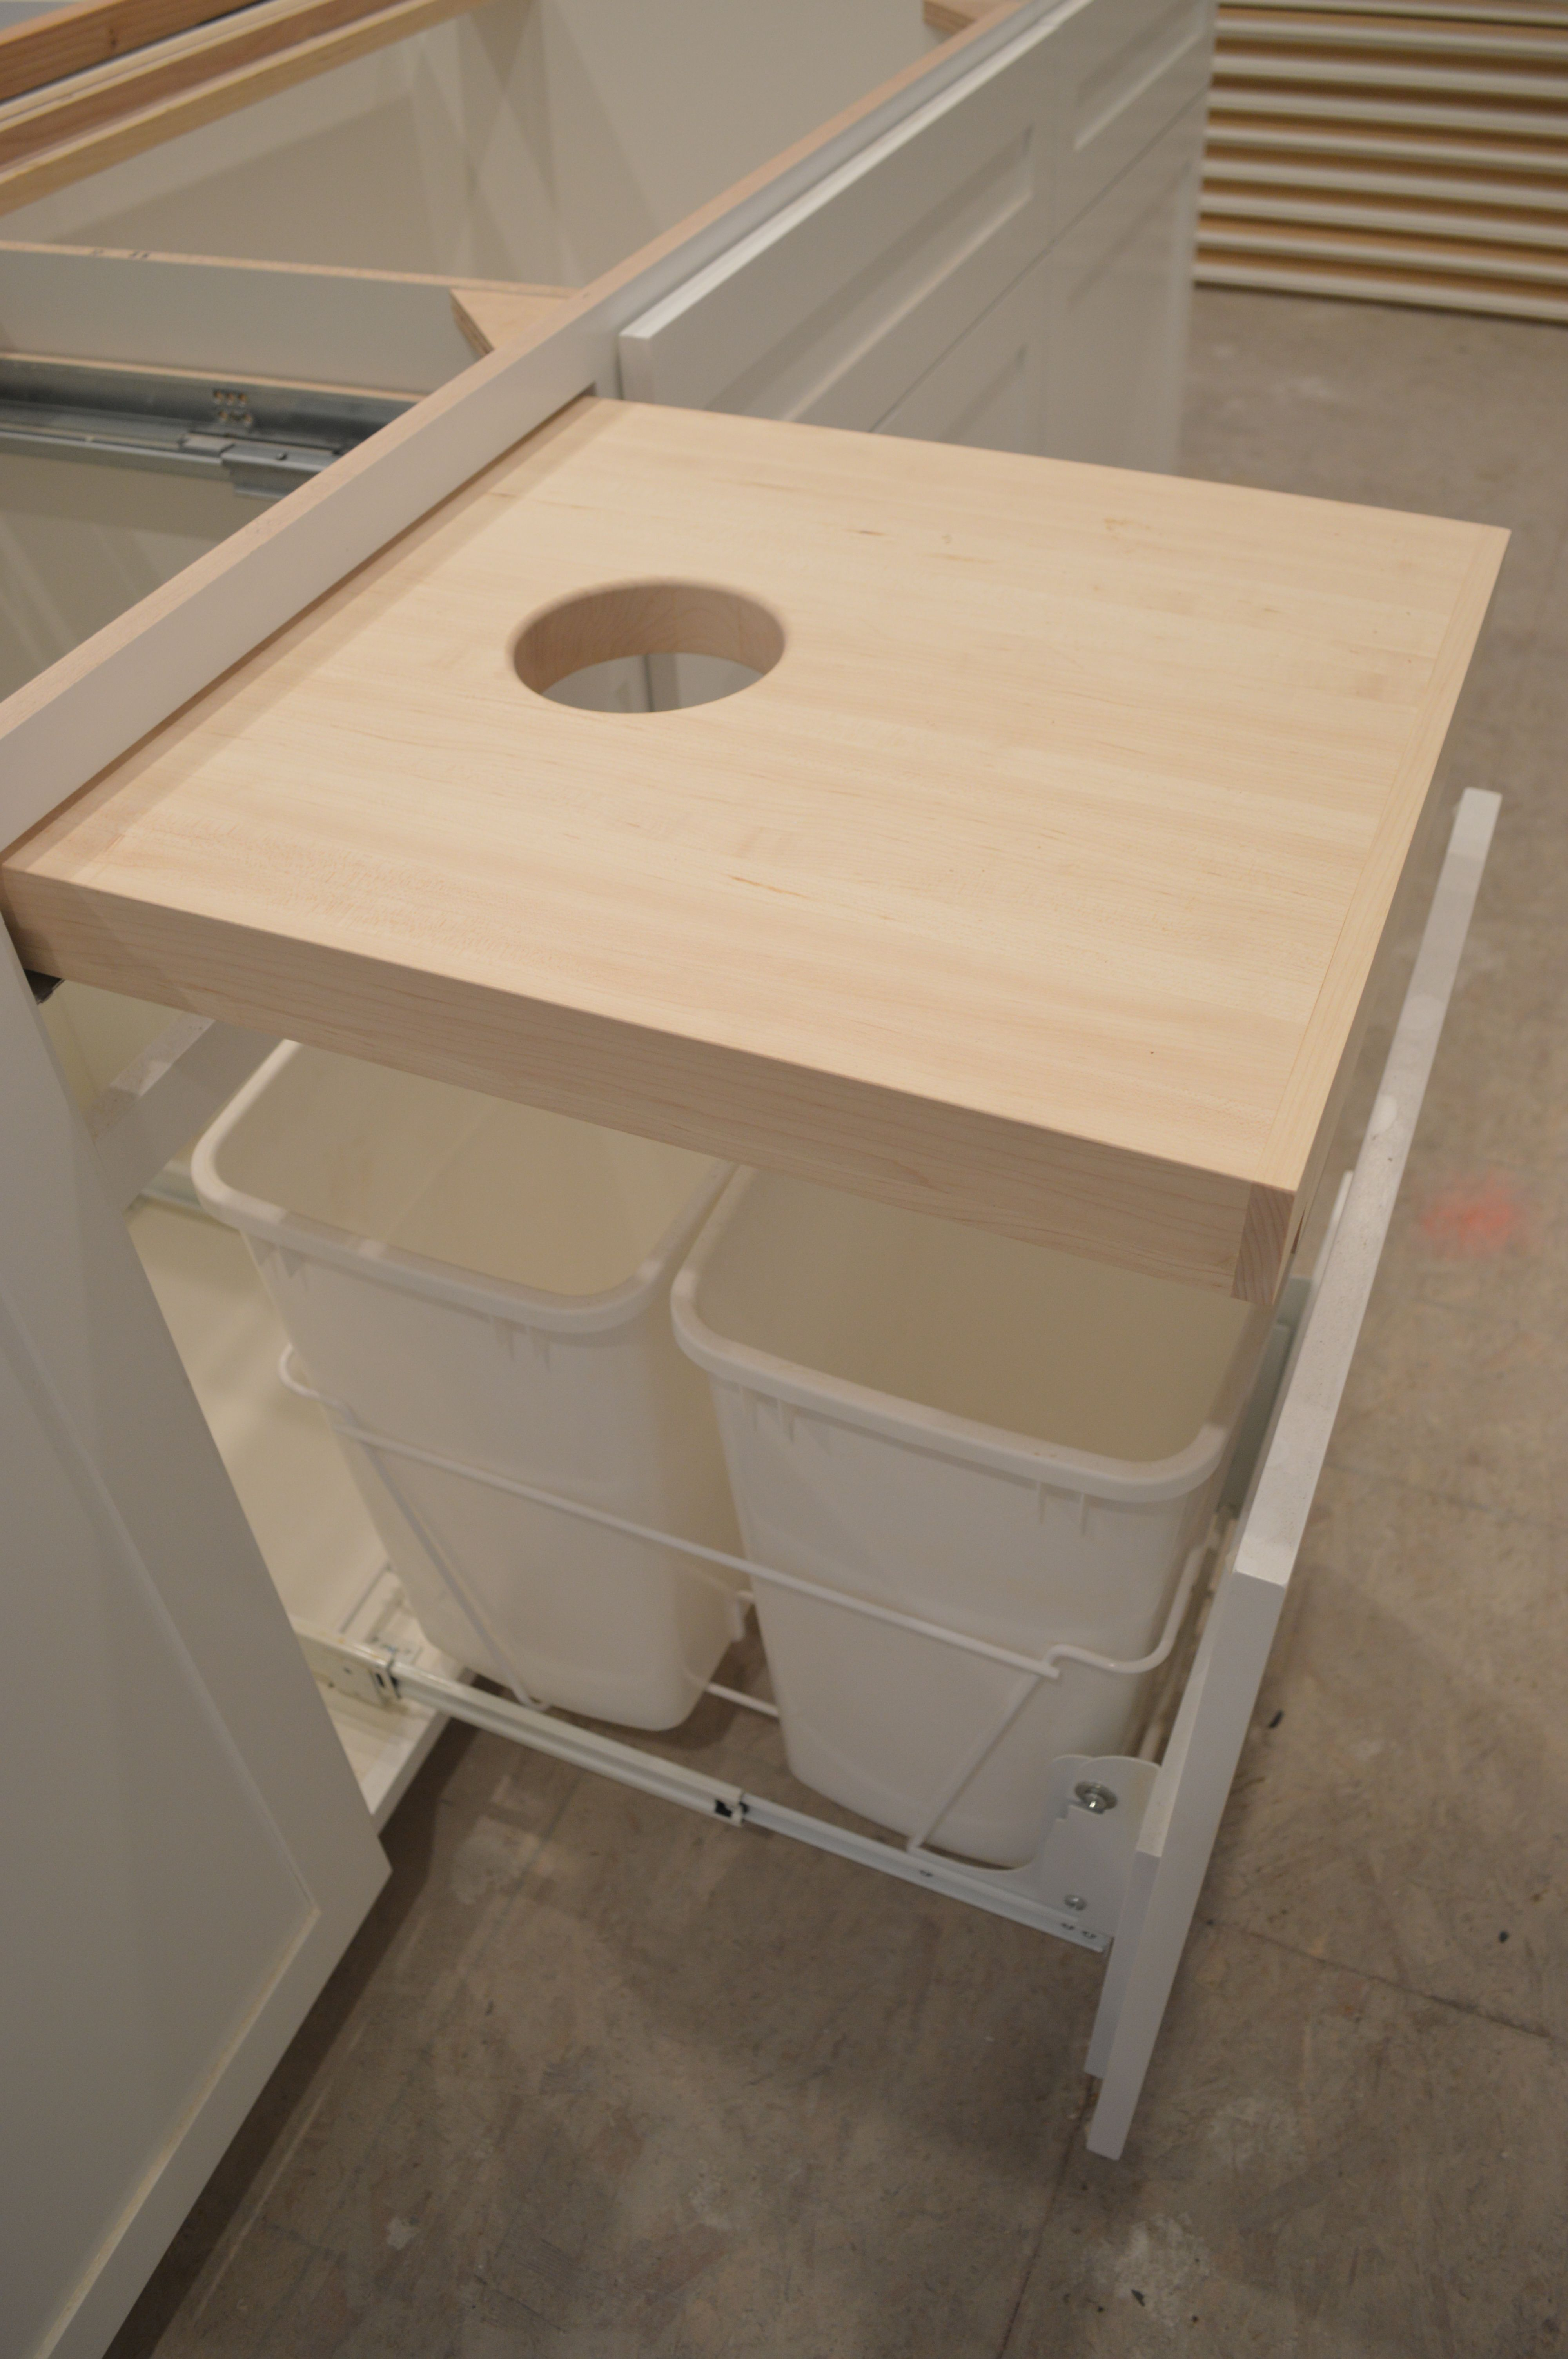 Kitchen Progress Cutting Board With Hole And Garbage Bins Below Check Instagram For